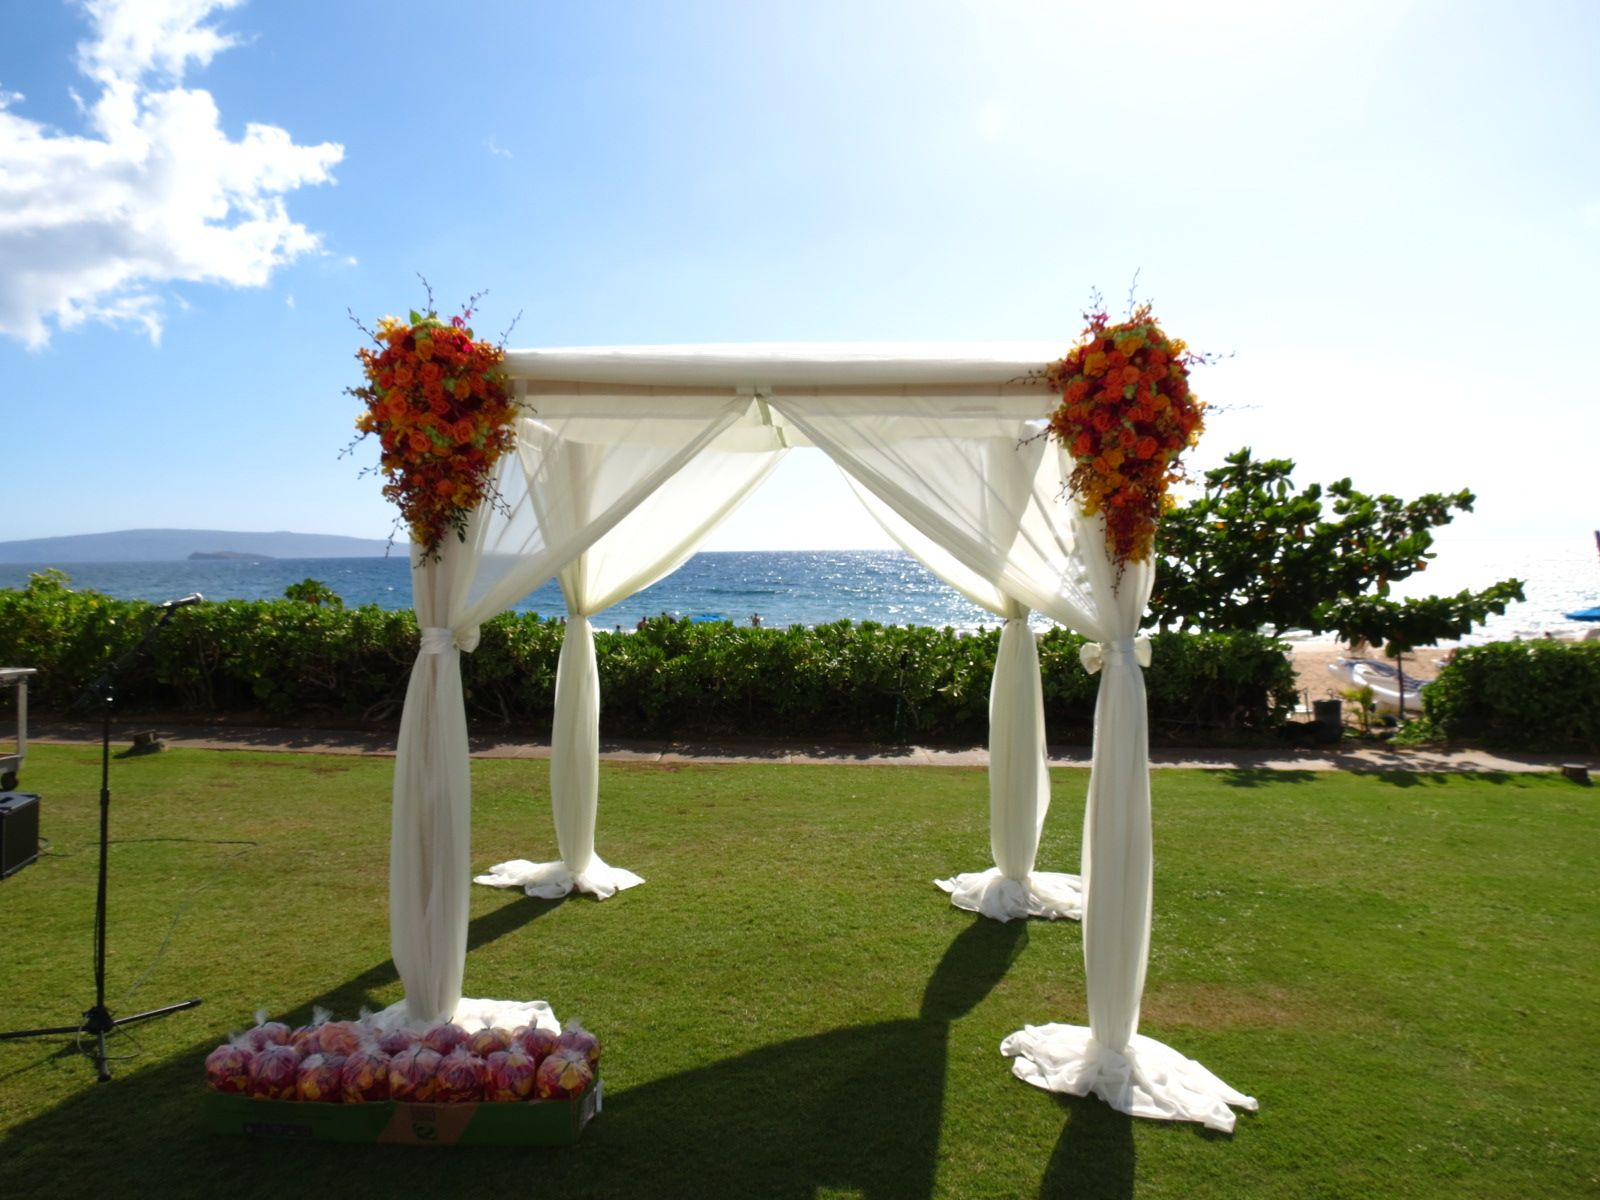 Destination Wedding set-up at Fairmont Kea Lani title=